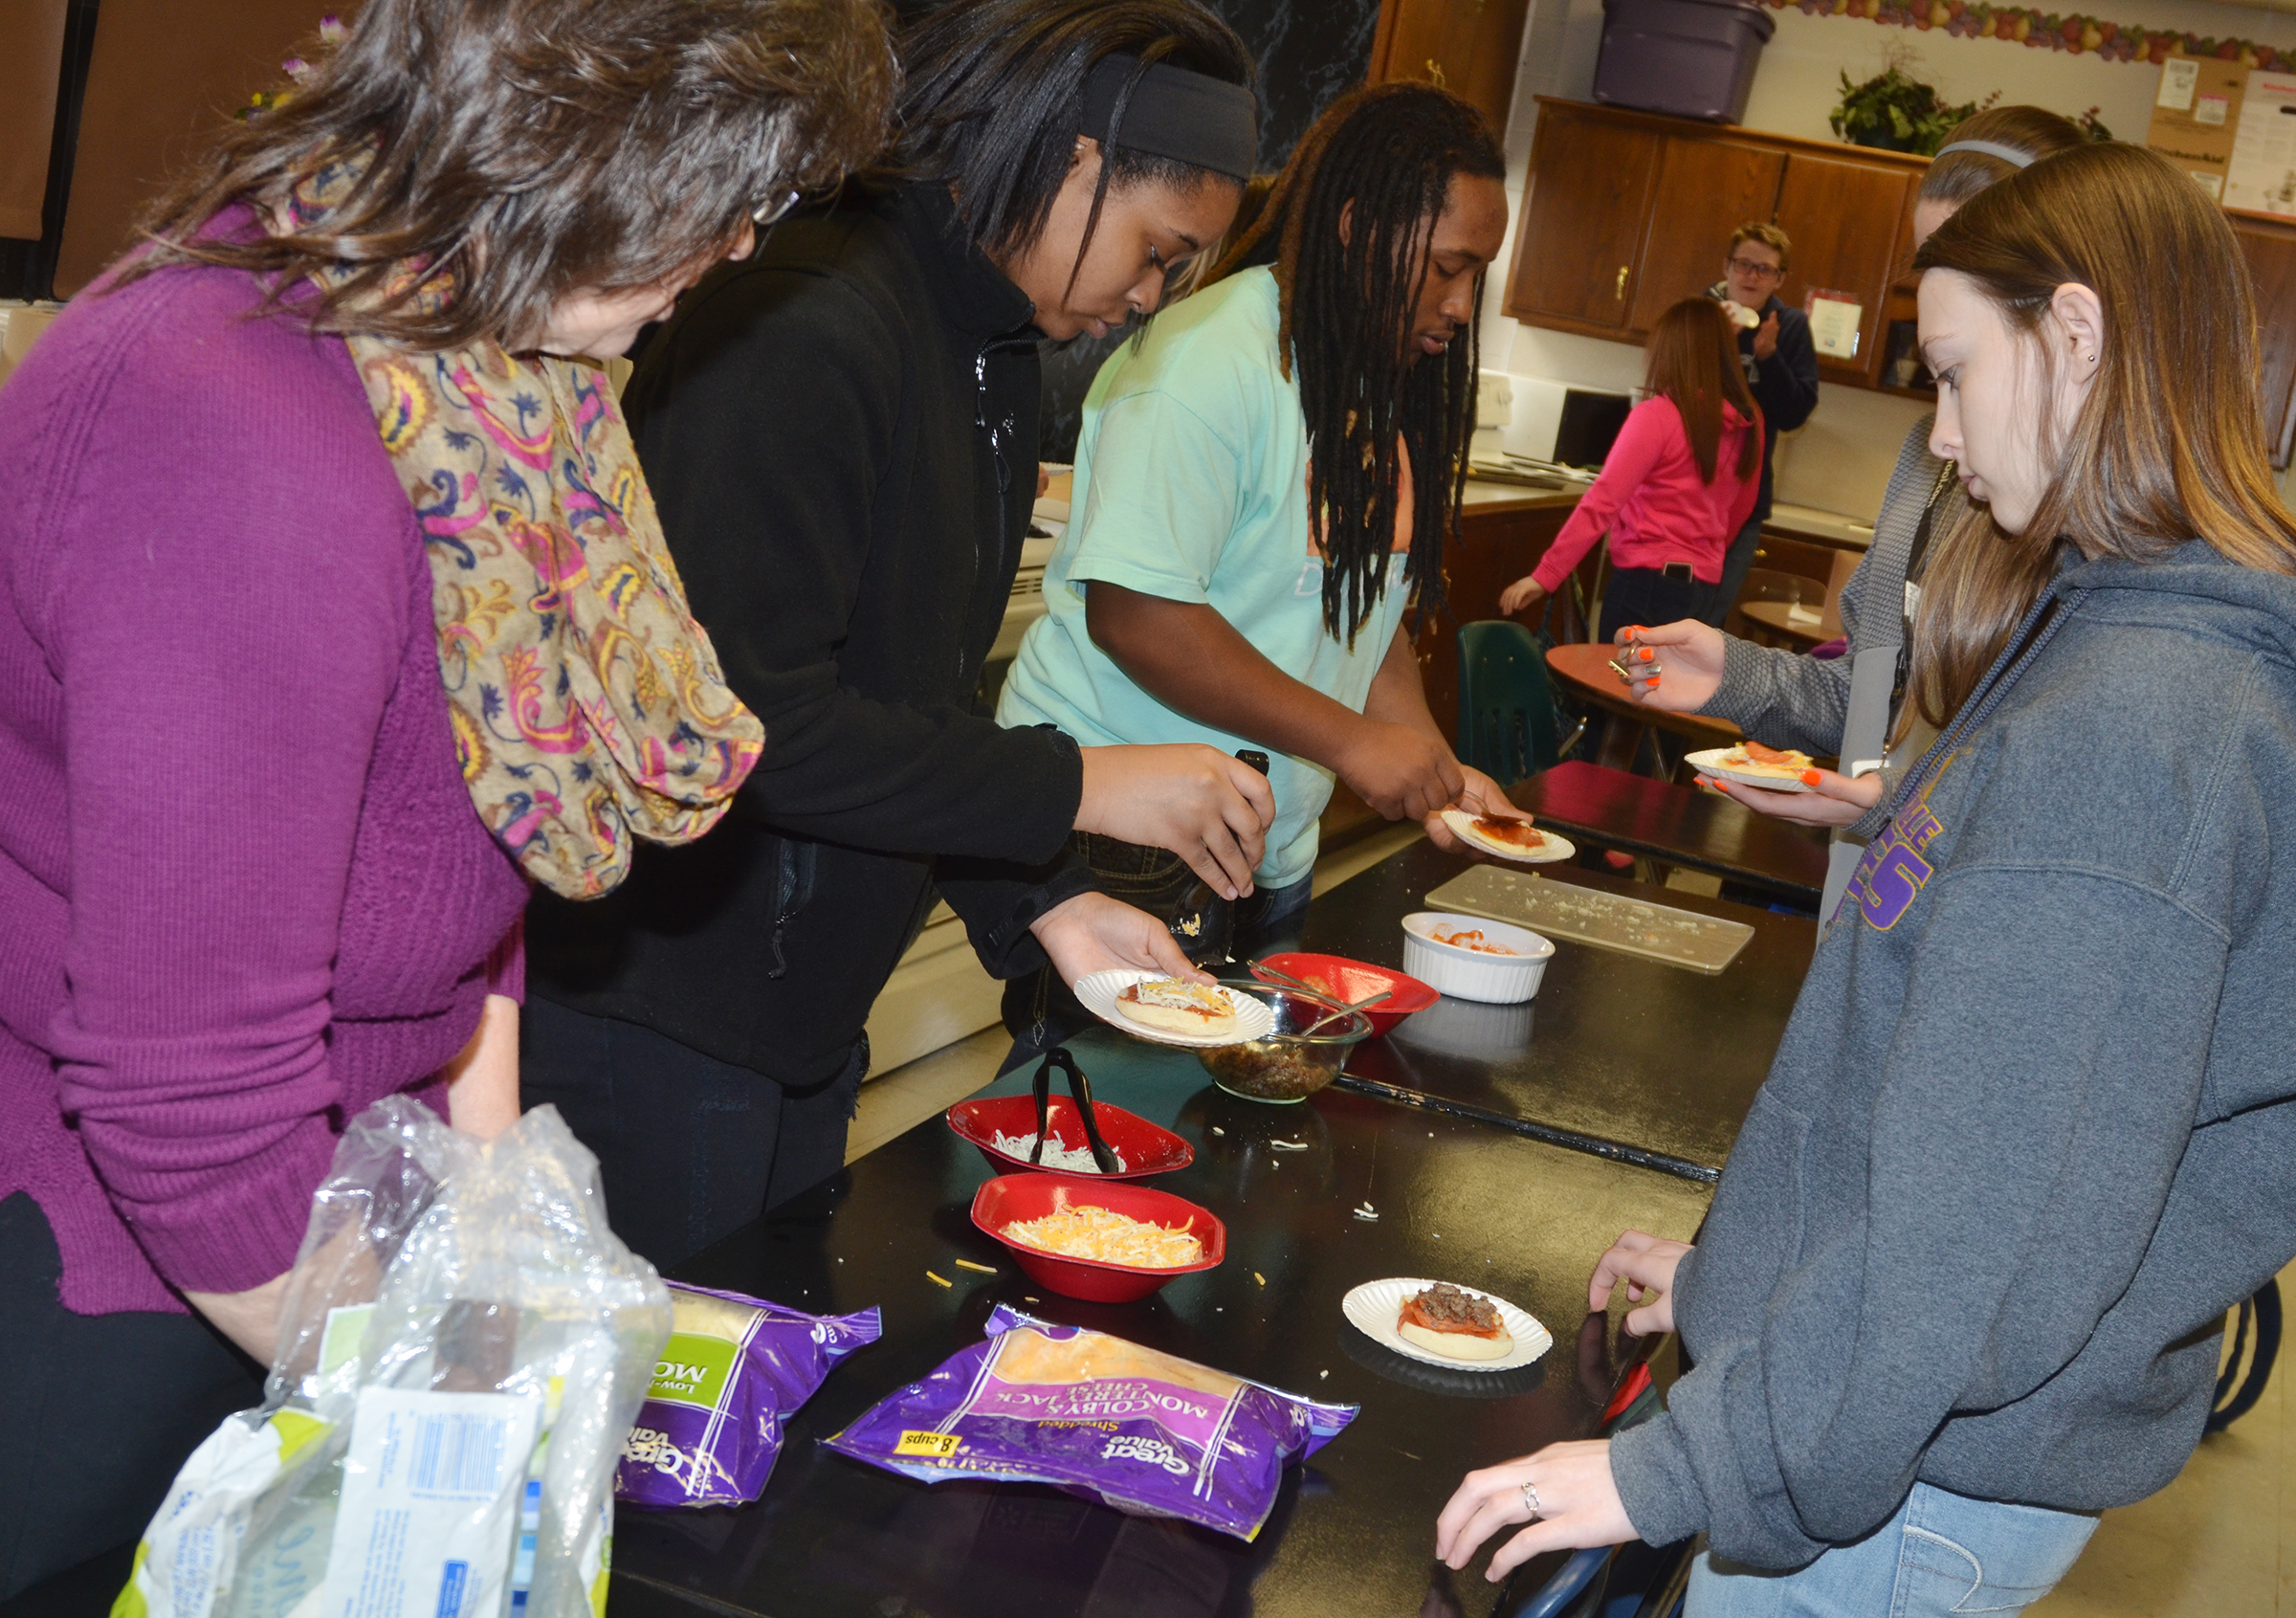 CHS teacher Deanna Campbell, at left, helps students, from left, junior Vonnea Smith and sophomores Ceondre Barnett and Caleigh Bright make English muffin pizzas.